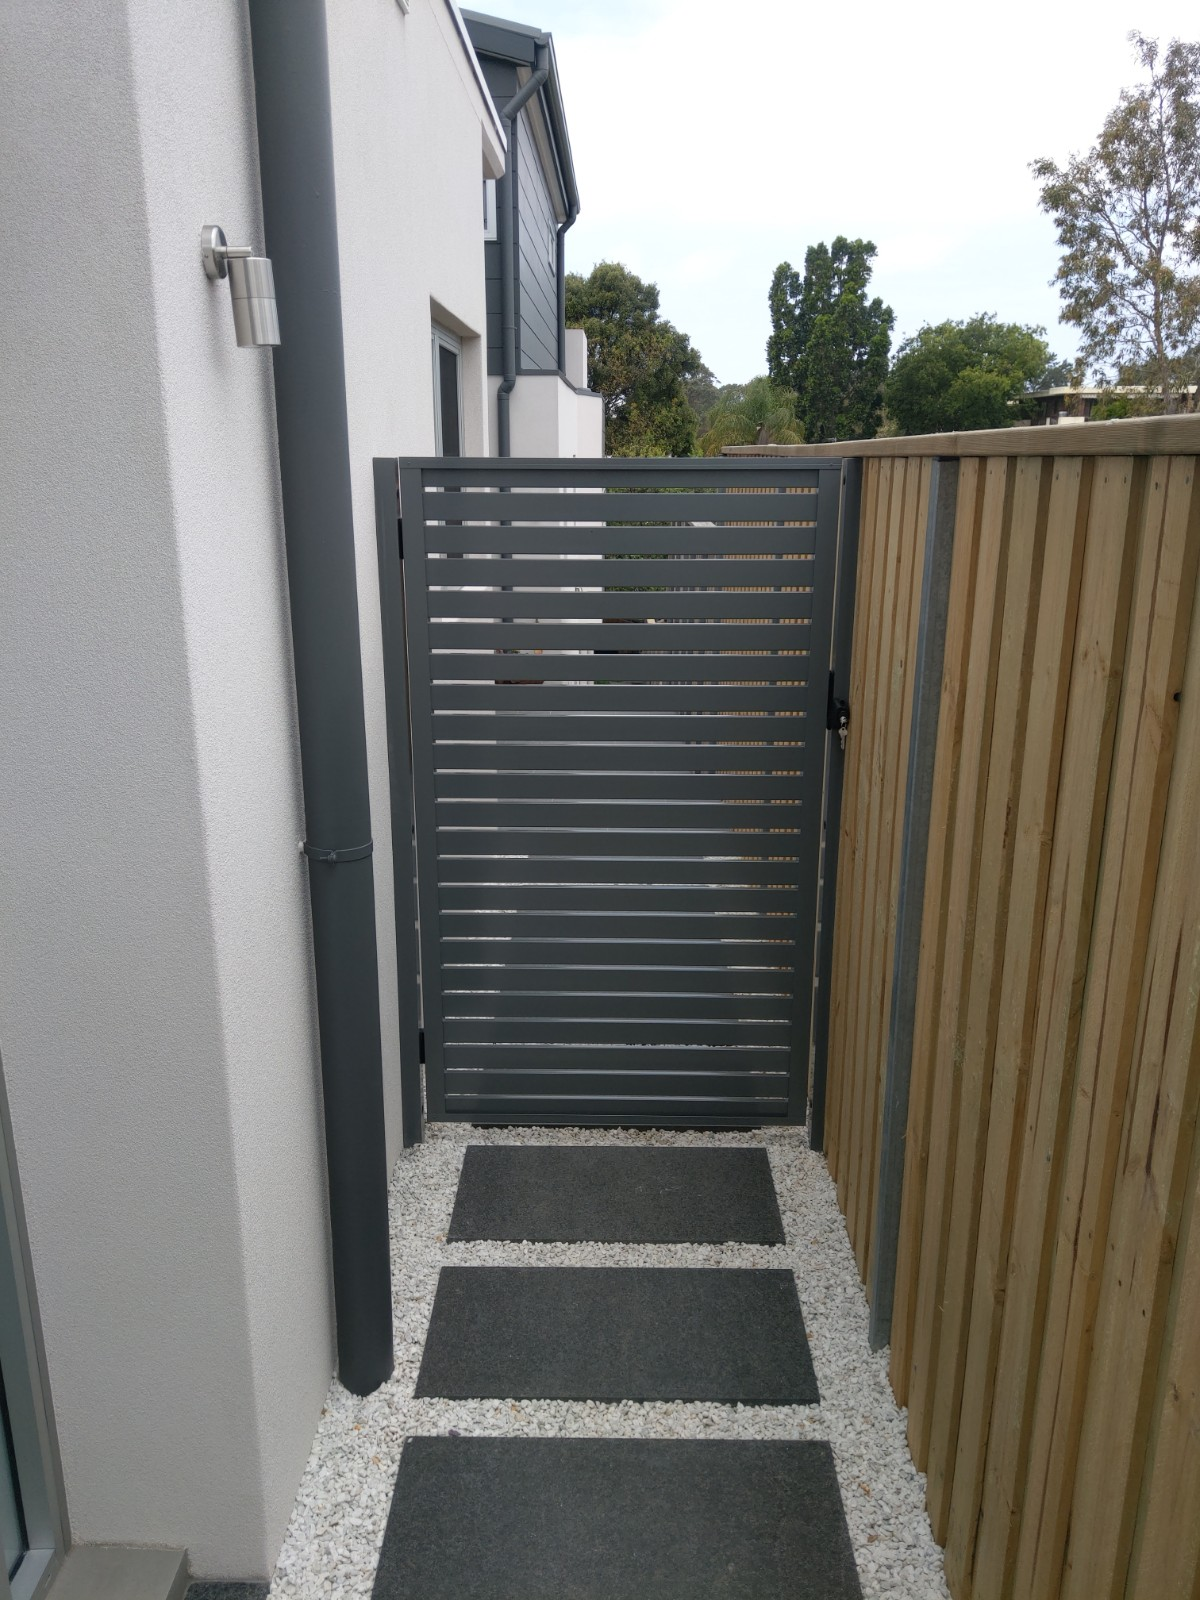 Slat Gate Mounted To The Wall And Fence Eco Awnings